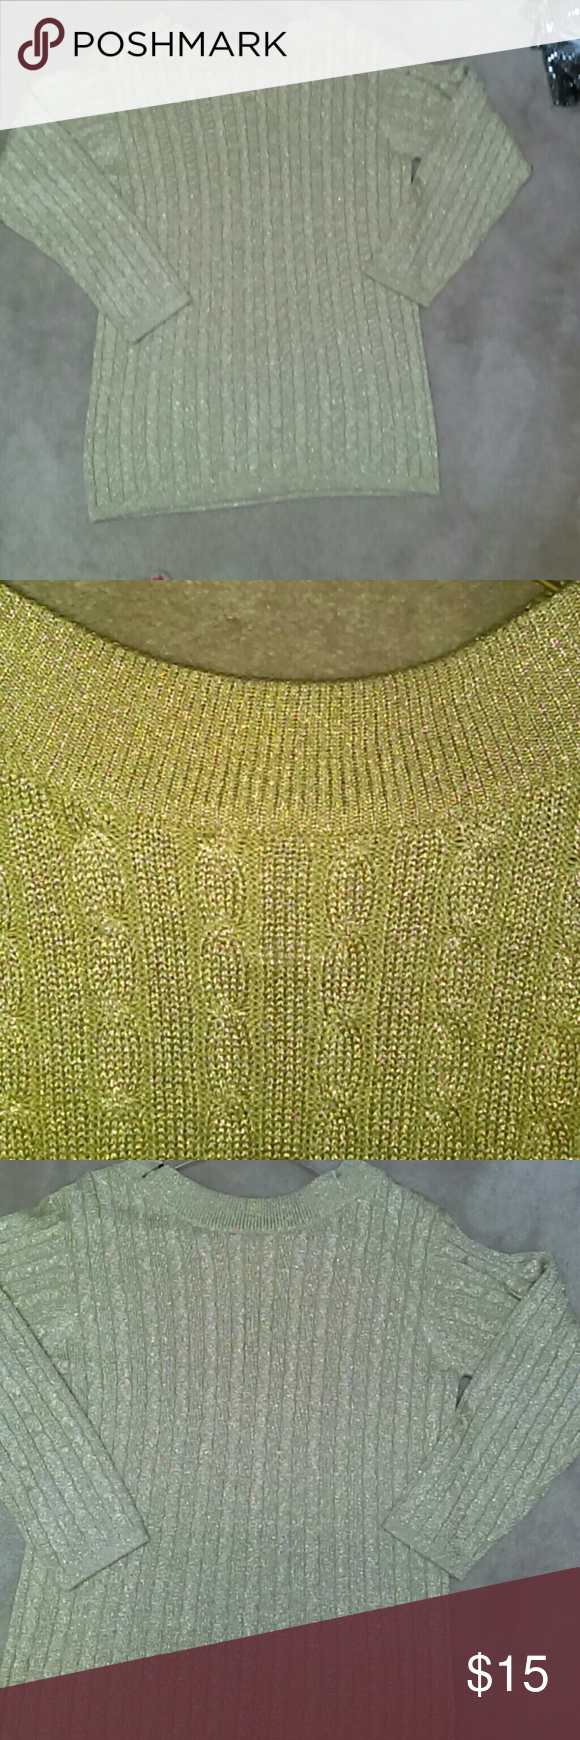 Preston and York Gold cable knit sweater | Cable knit sweaters ...